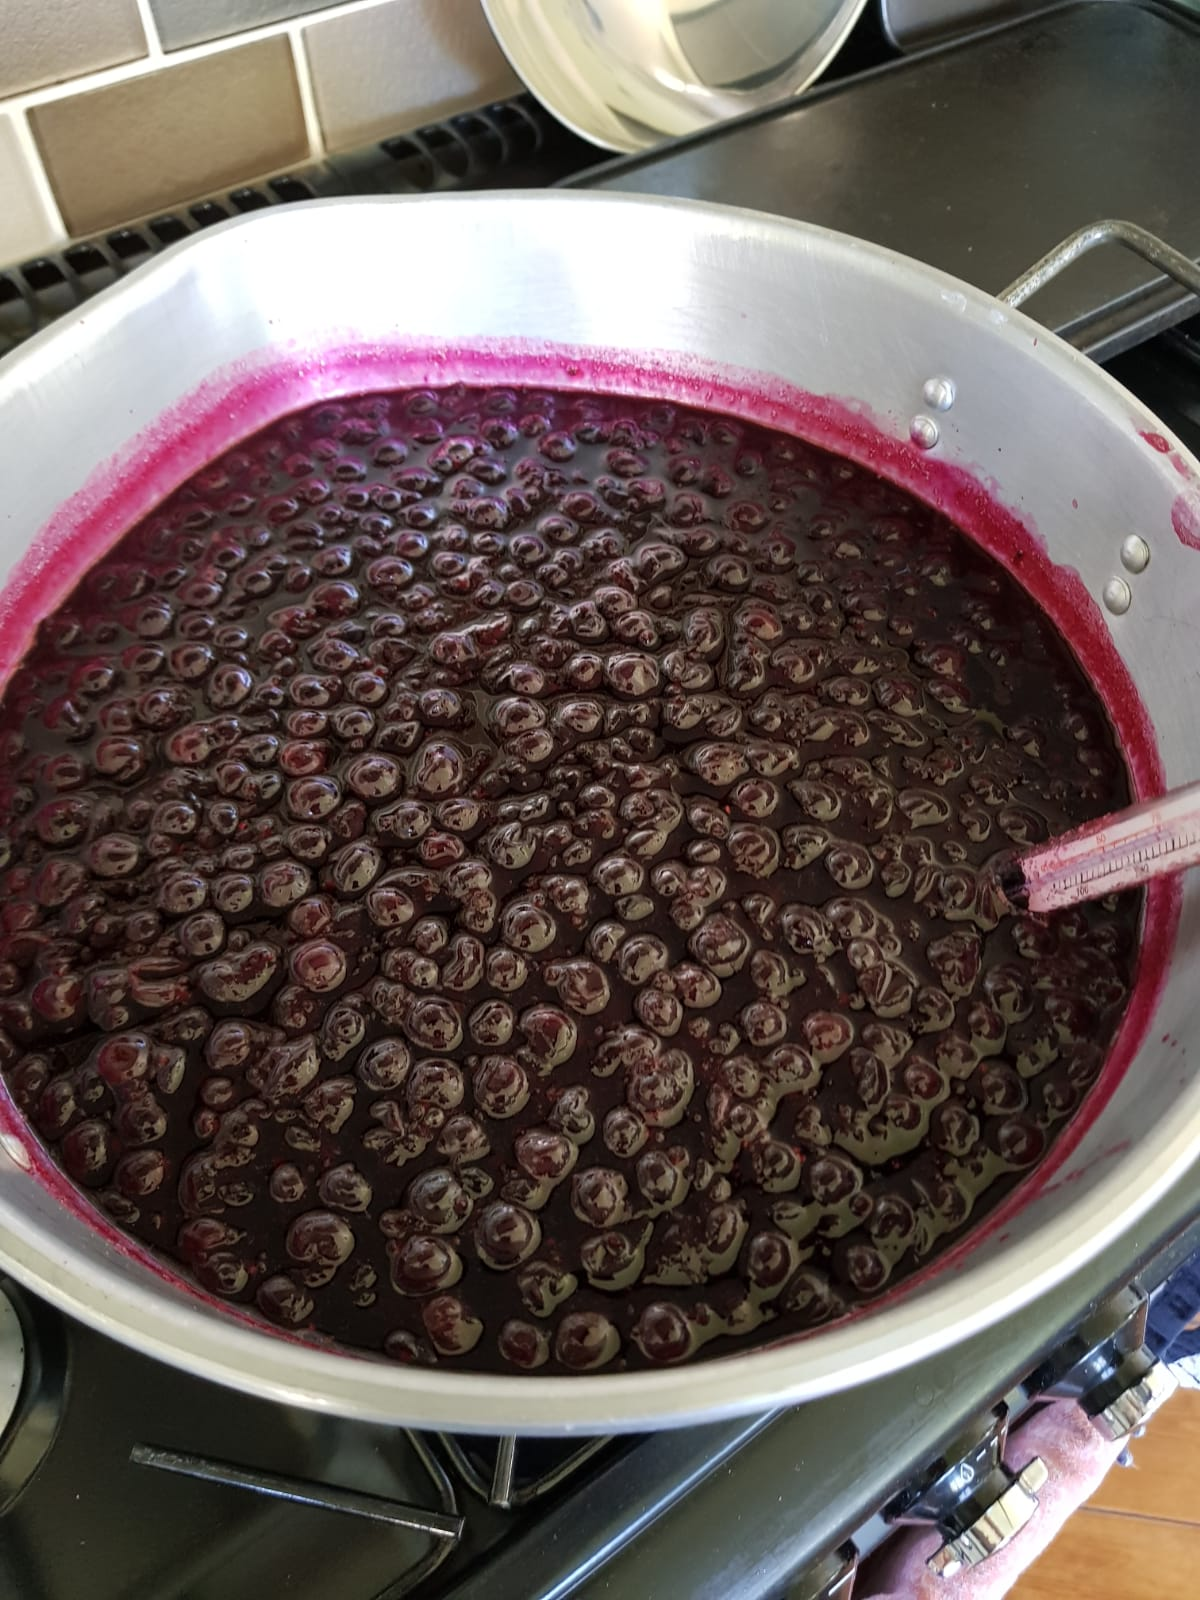 Blackcurrant jam in pan